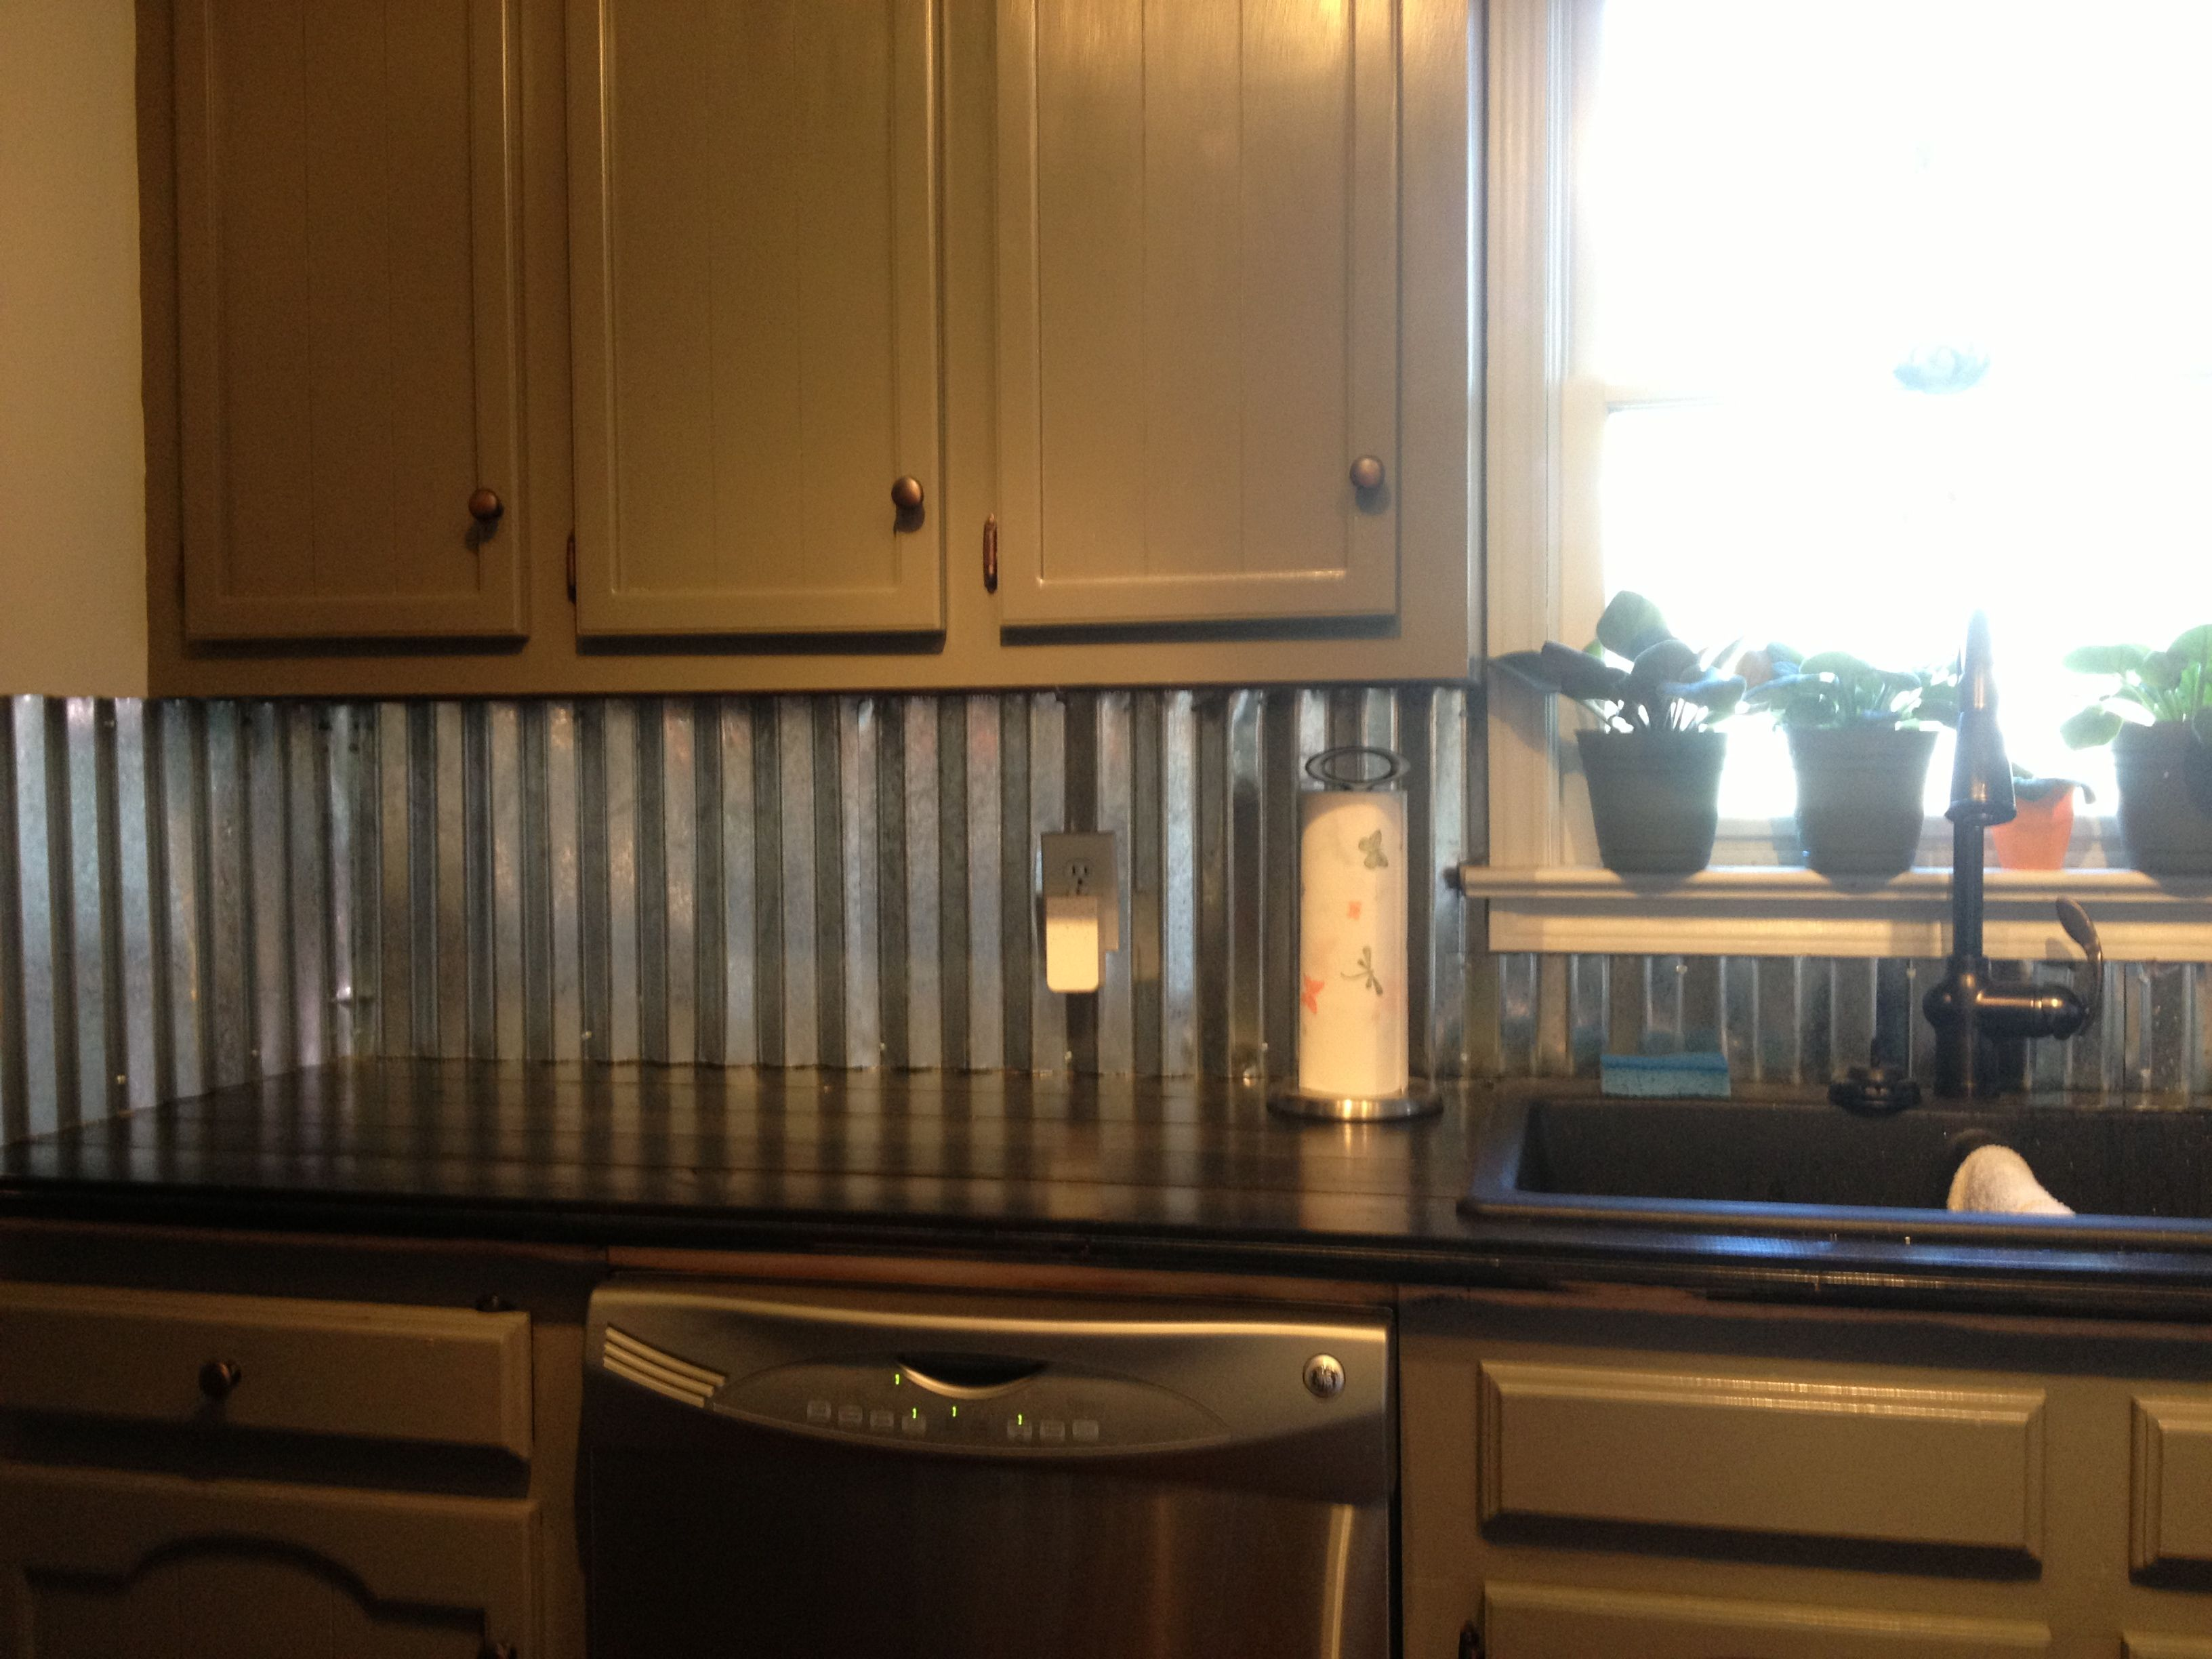 corrugated metal backsplash kitchen counter tops